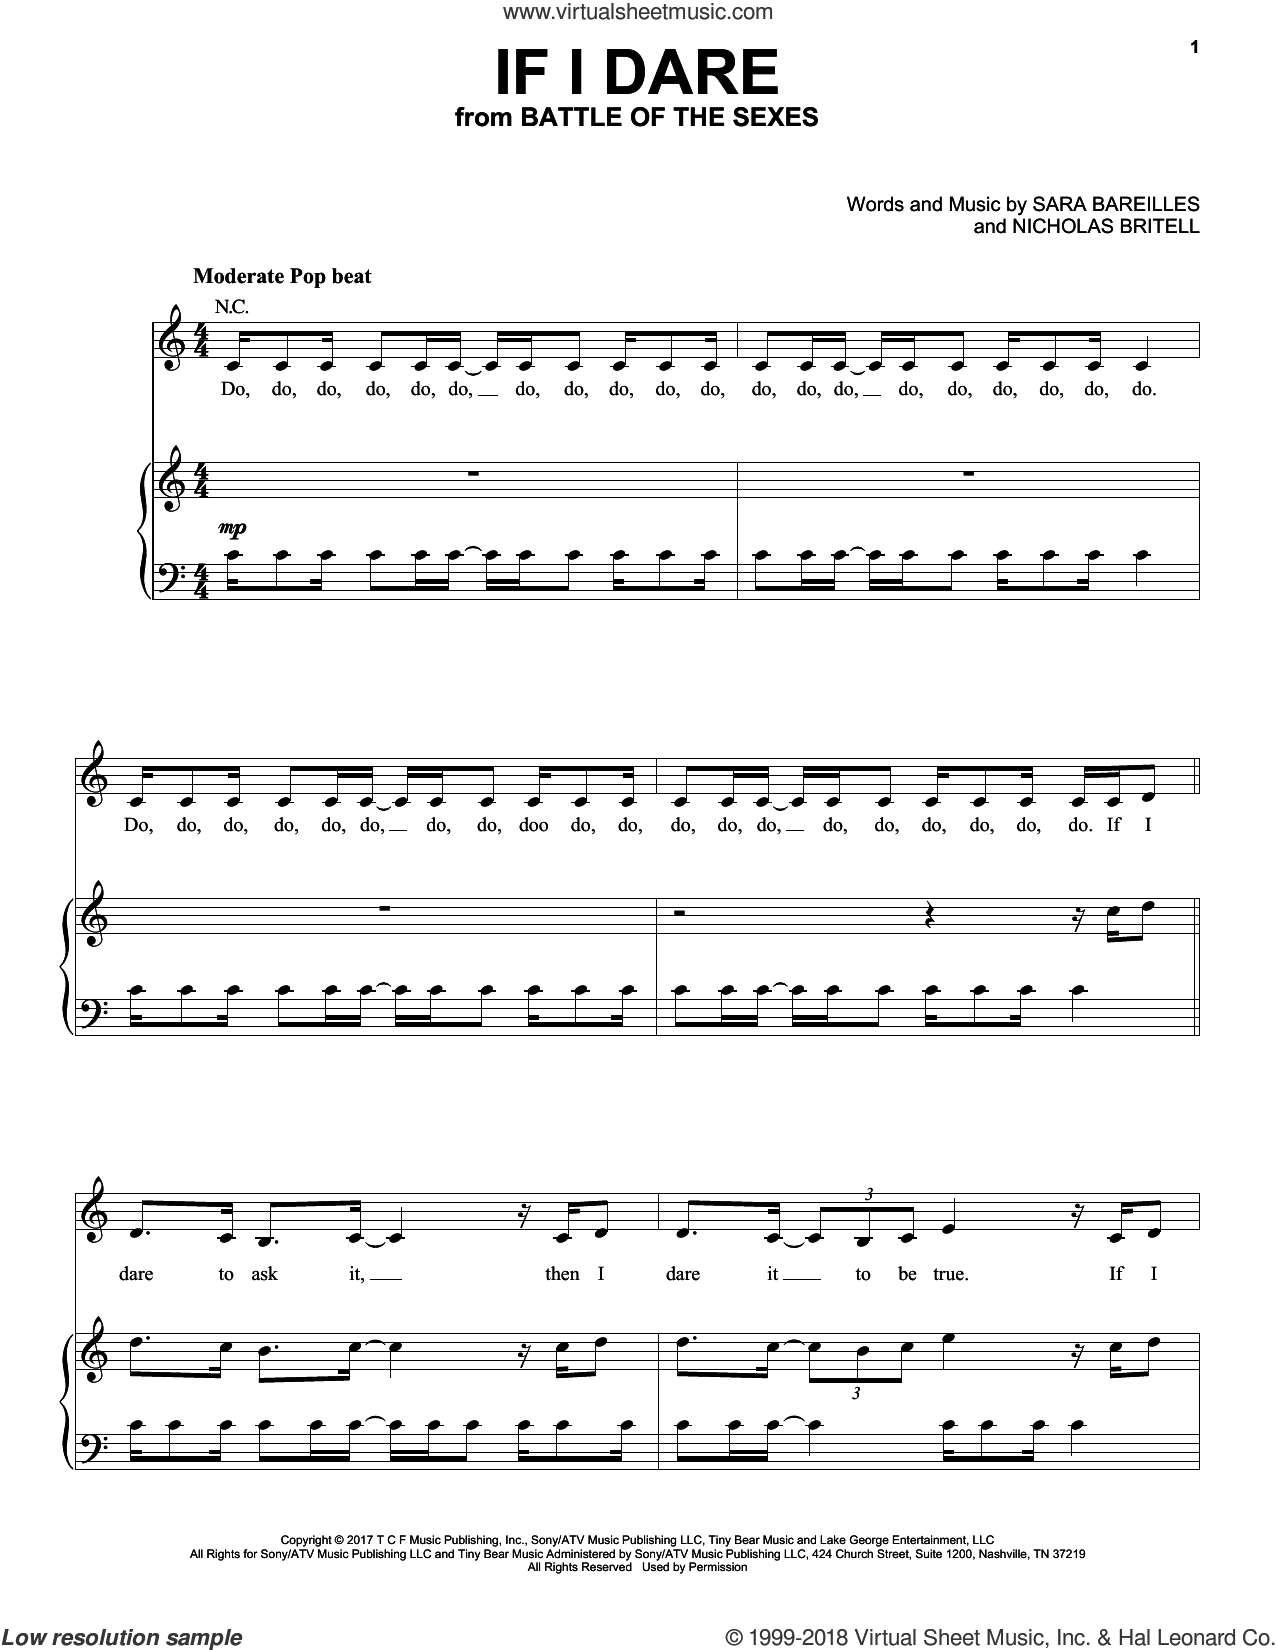 If I Dare sheet music for voice, piano or guitar by Sara Bareilles, Nicholas Britell and Sarah Bareilles, intermediate skill level